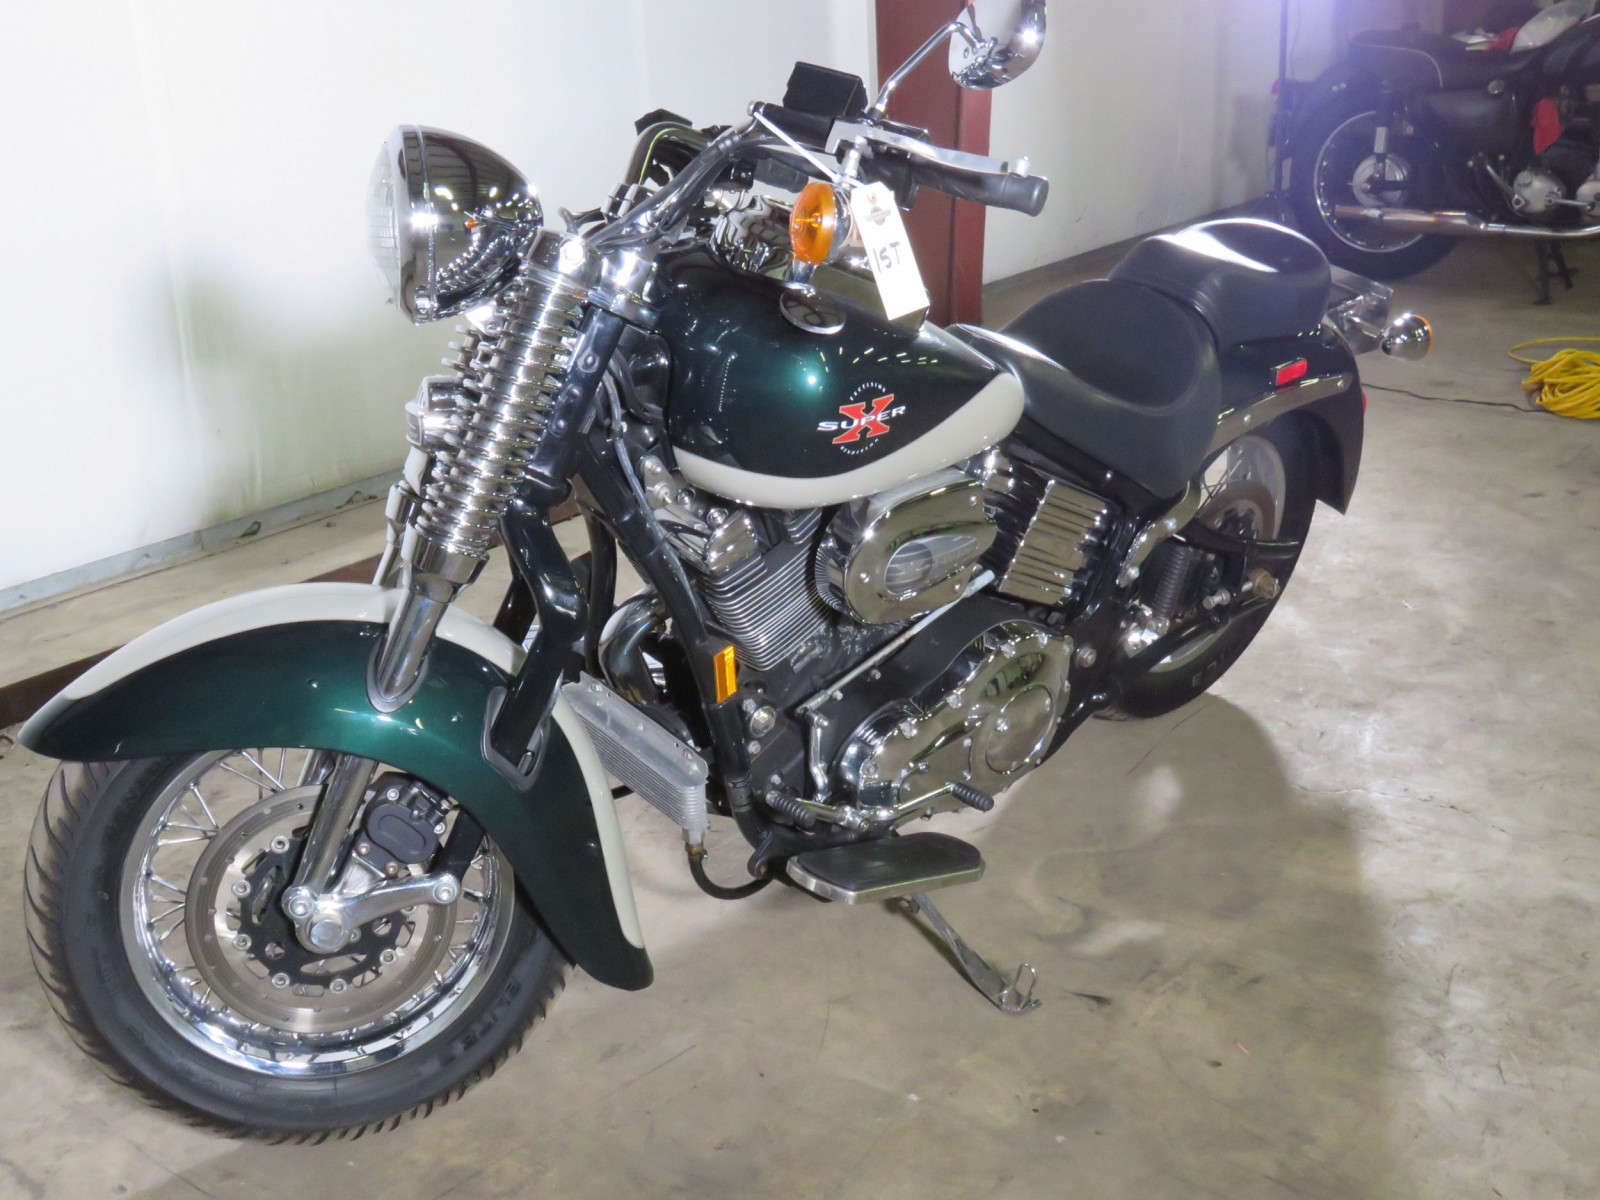 1999 Excelsior Henderson Super X Motorcycle - Image 2